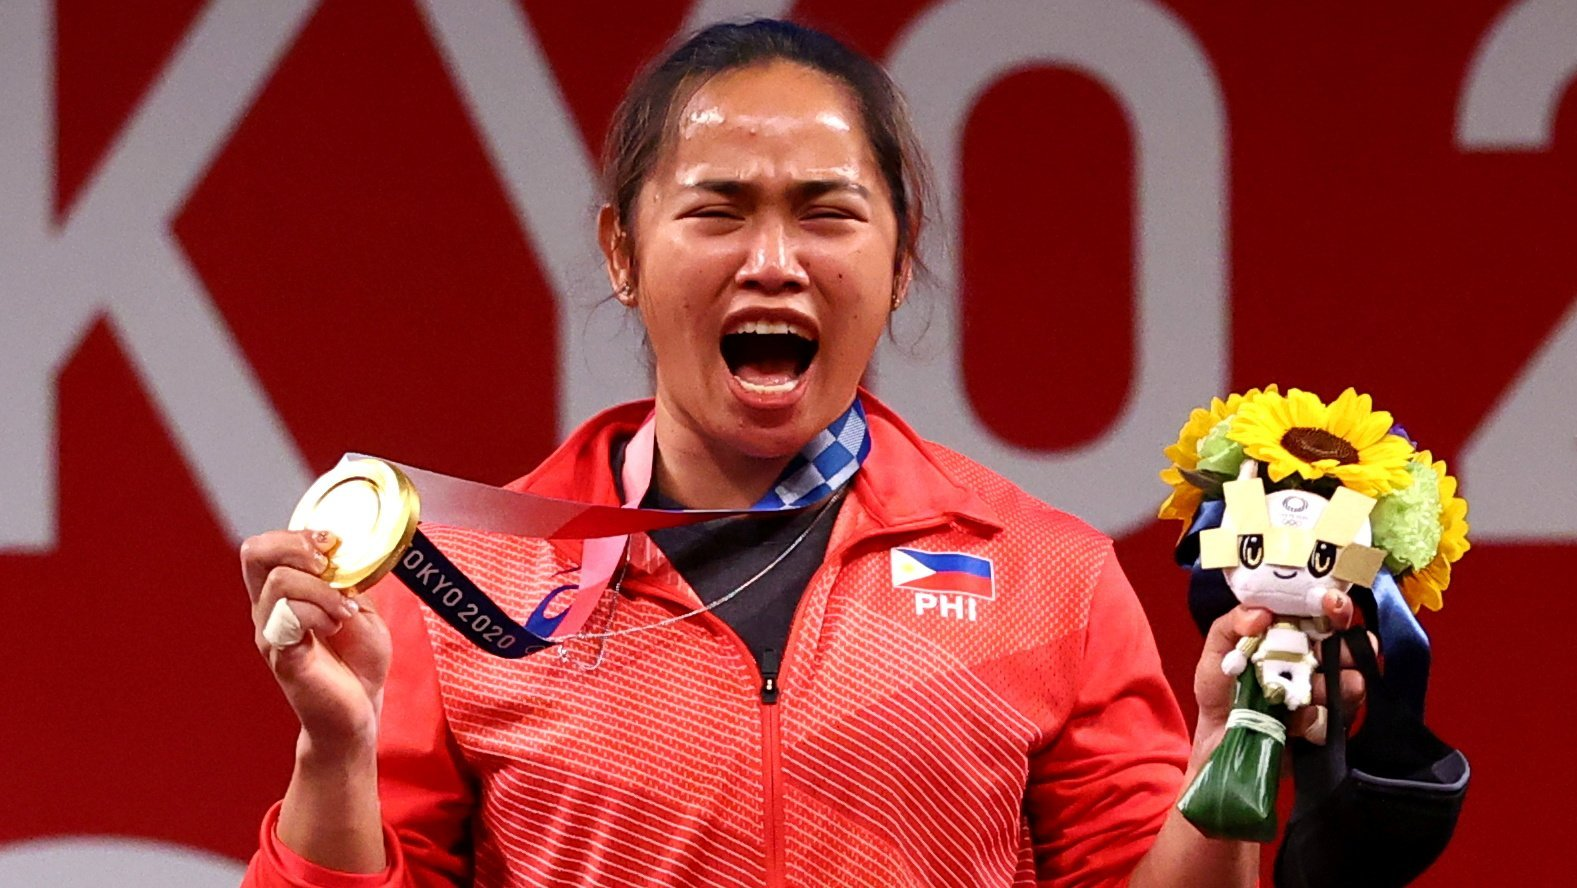 Olympics-Weightlifting-Diaz wins first ever Olympic gold for Philippines